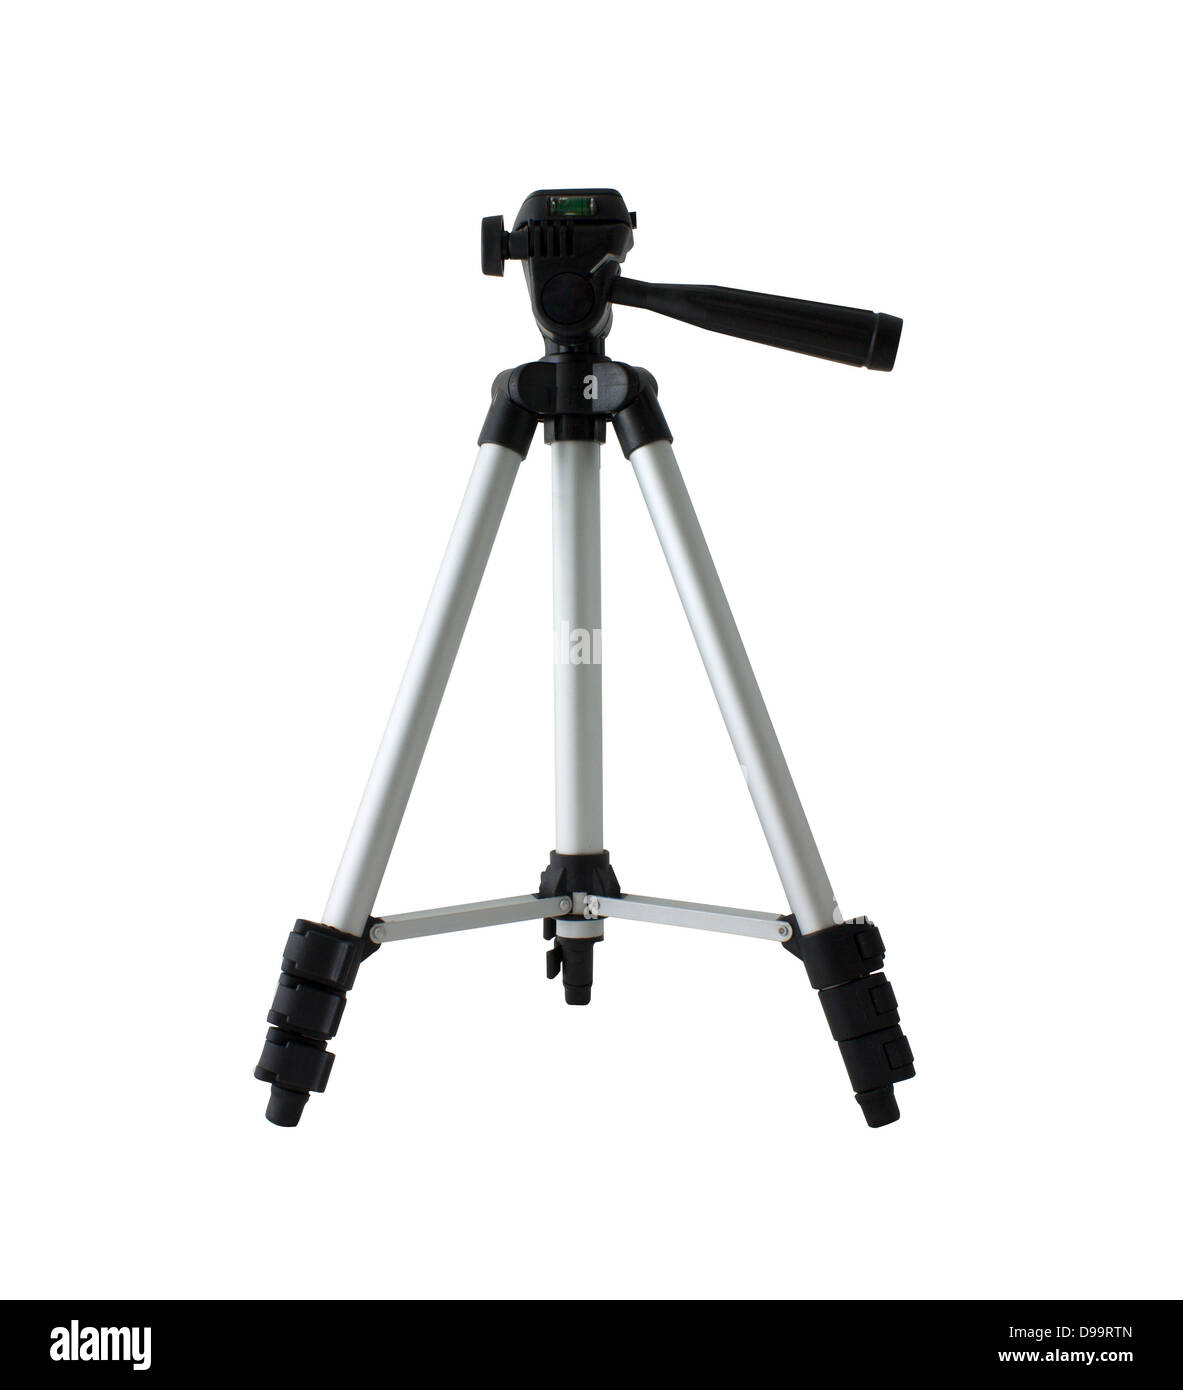 Back side of Small tripod camera isolated on white background. - Stock Image